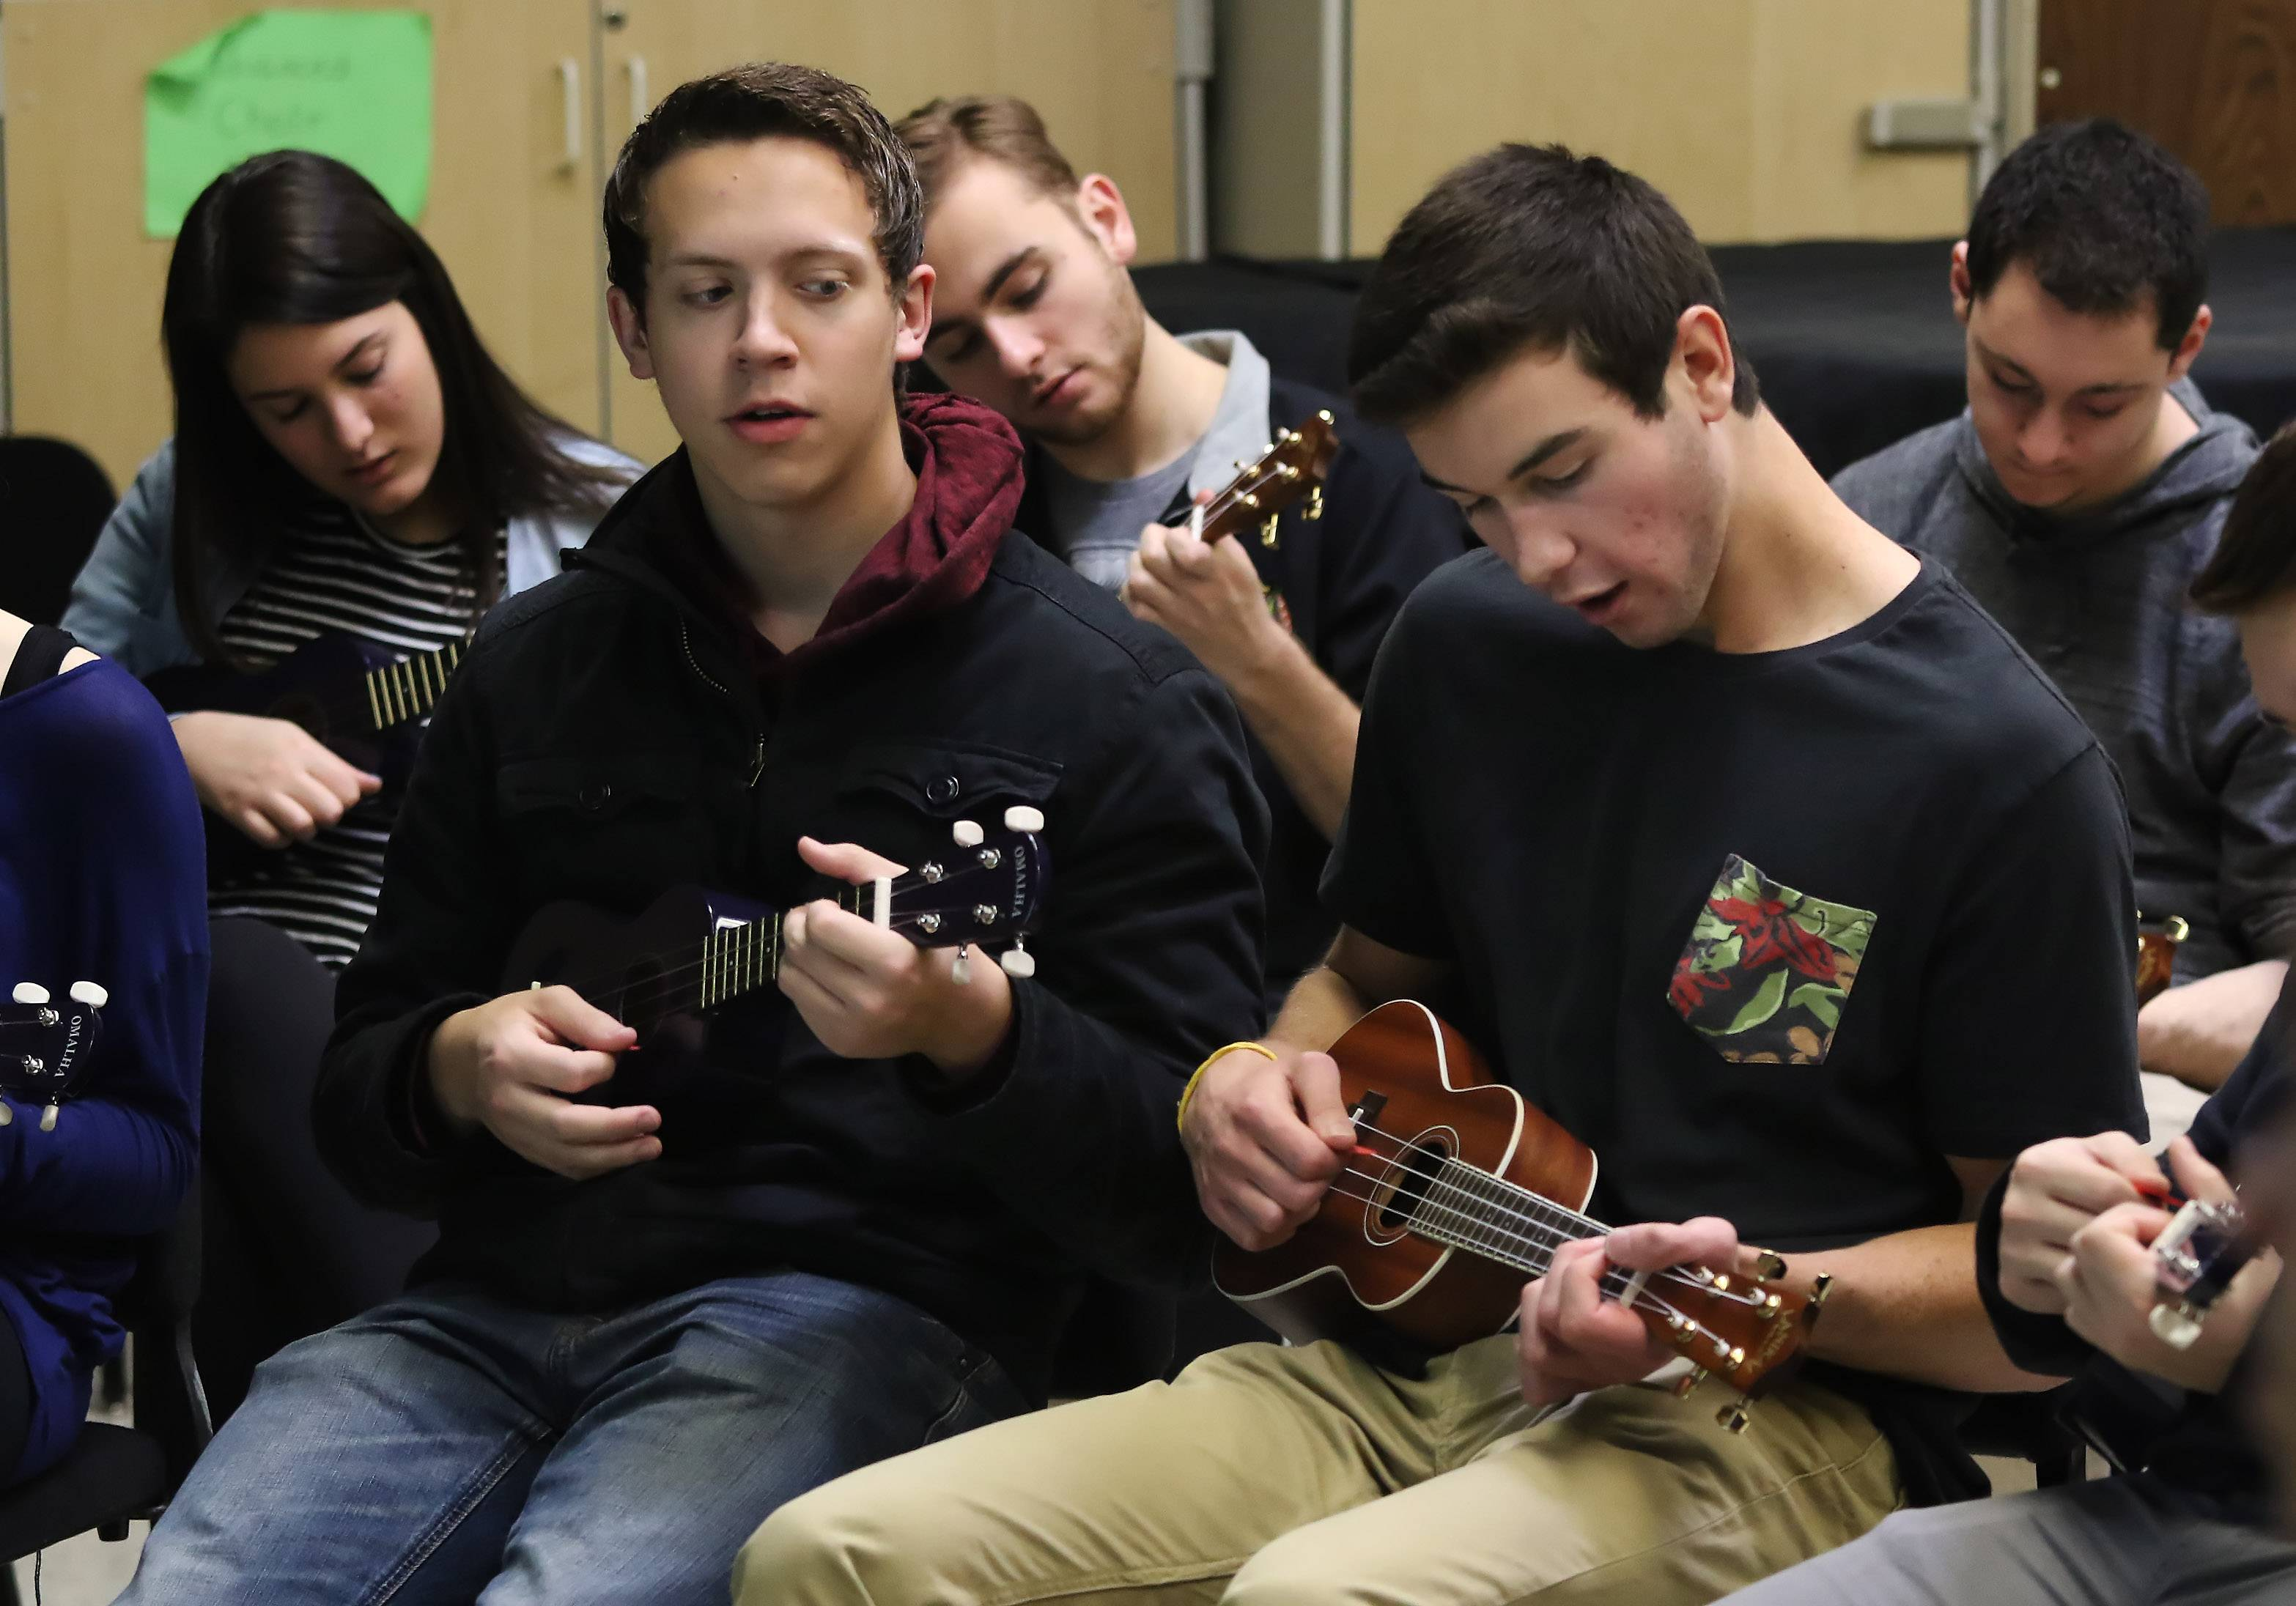 Stevenson High School students Michael Schodin, left, and Michael Manion learn to play ukuleles Tuesday during Odyssey 2016 at the Lincolnshire school. More than 160 visiting artists and 42 faculty instructed classes ranging from cake decorating, calligraphy and flower arranging to zumba and special effects make up.